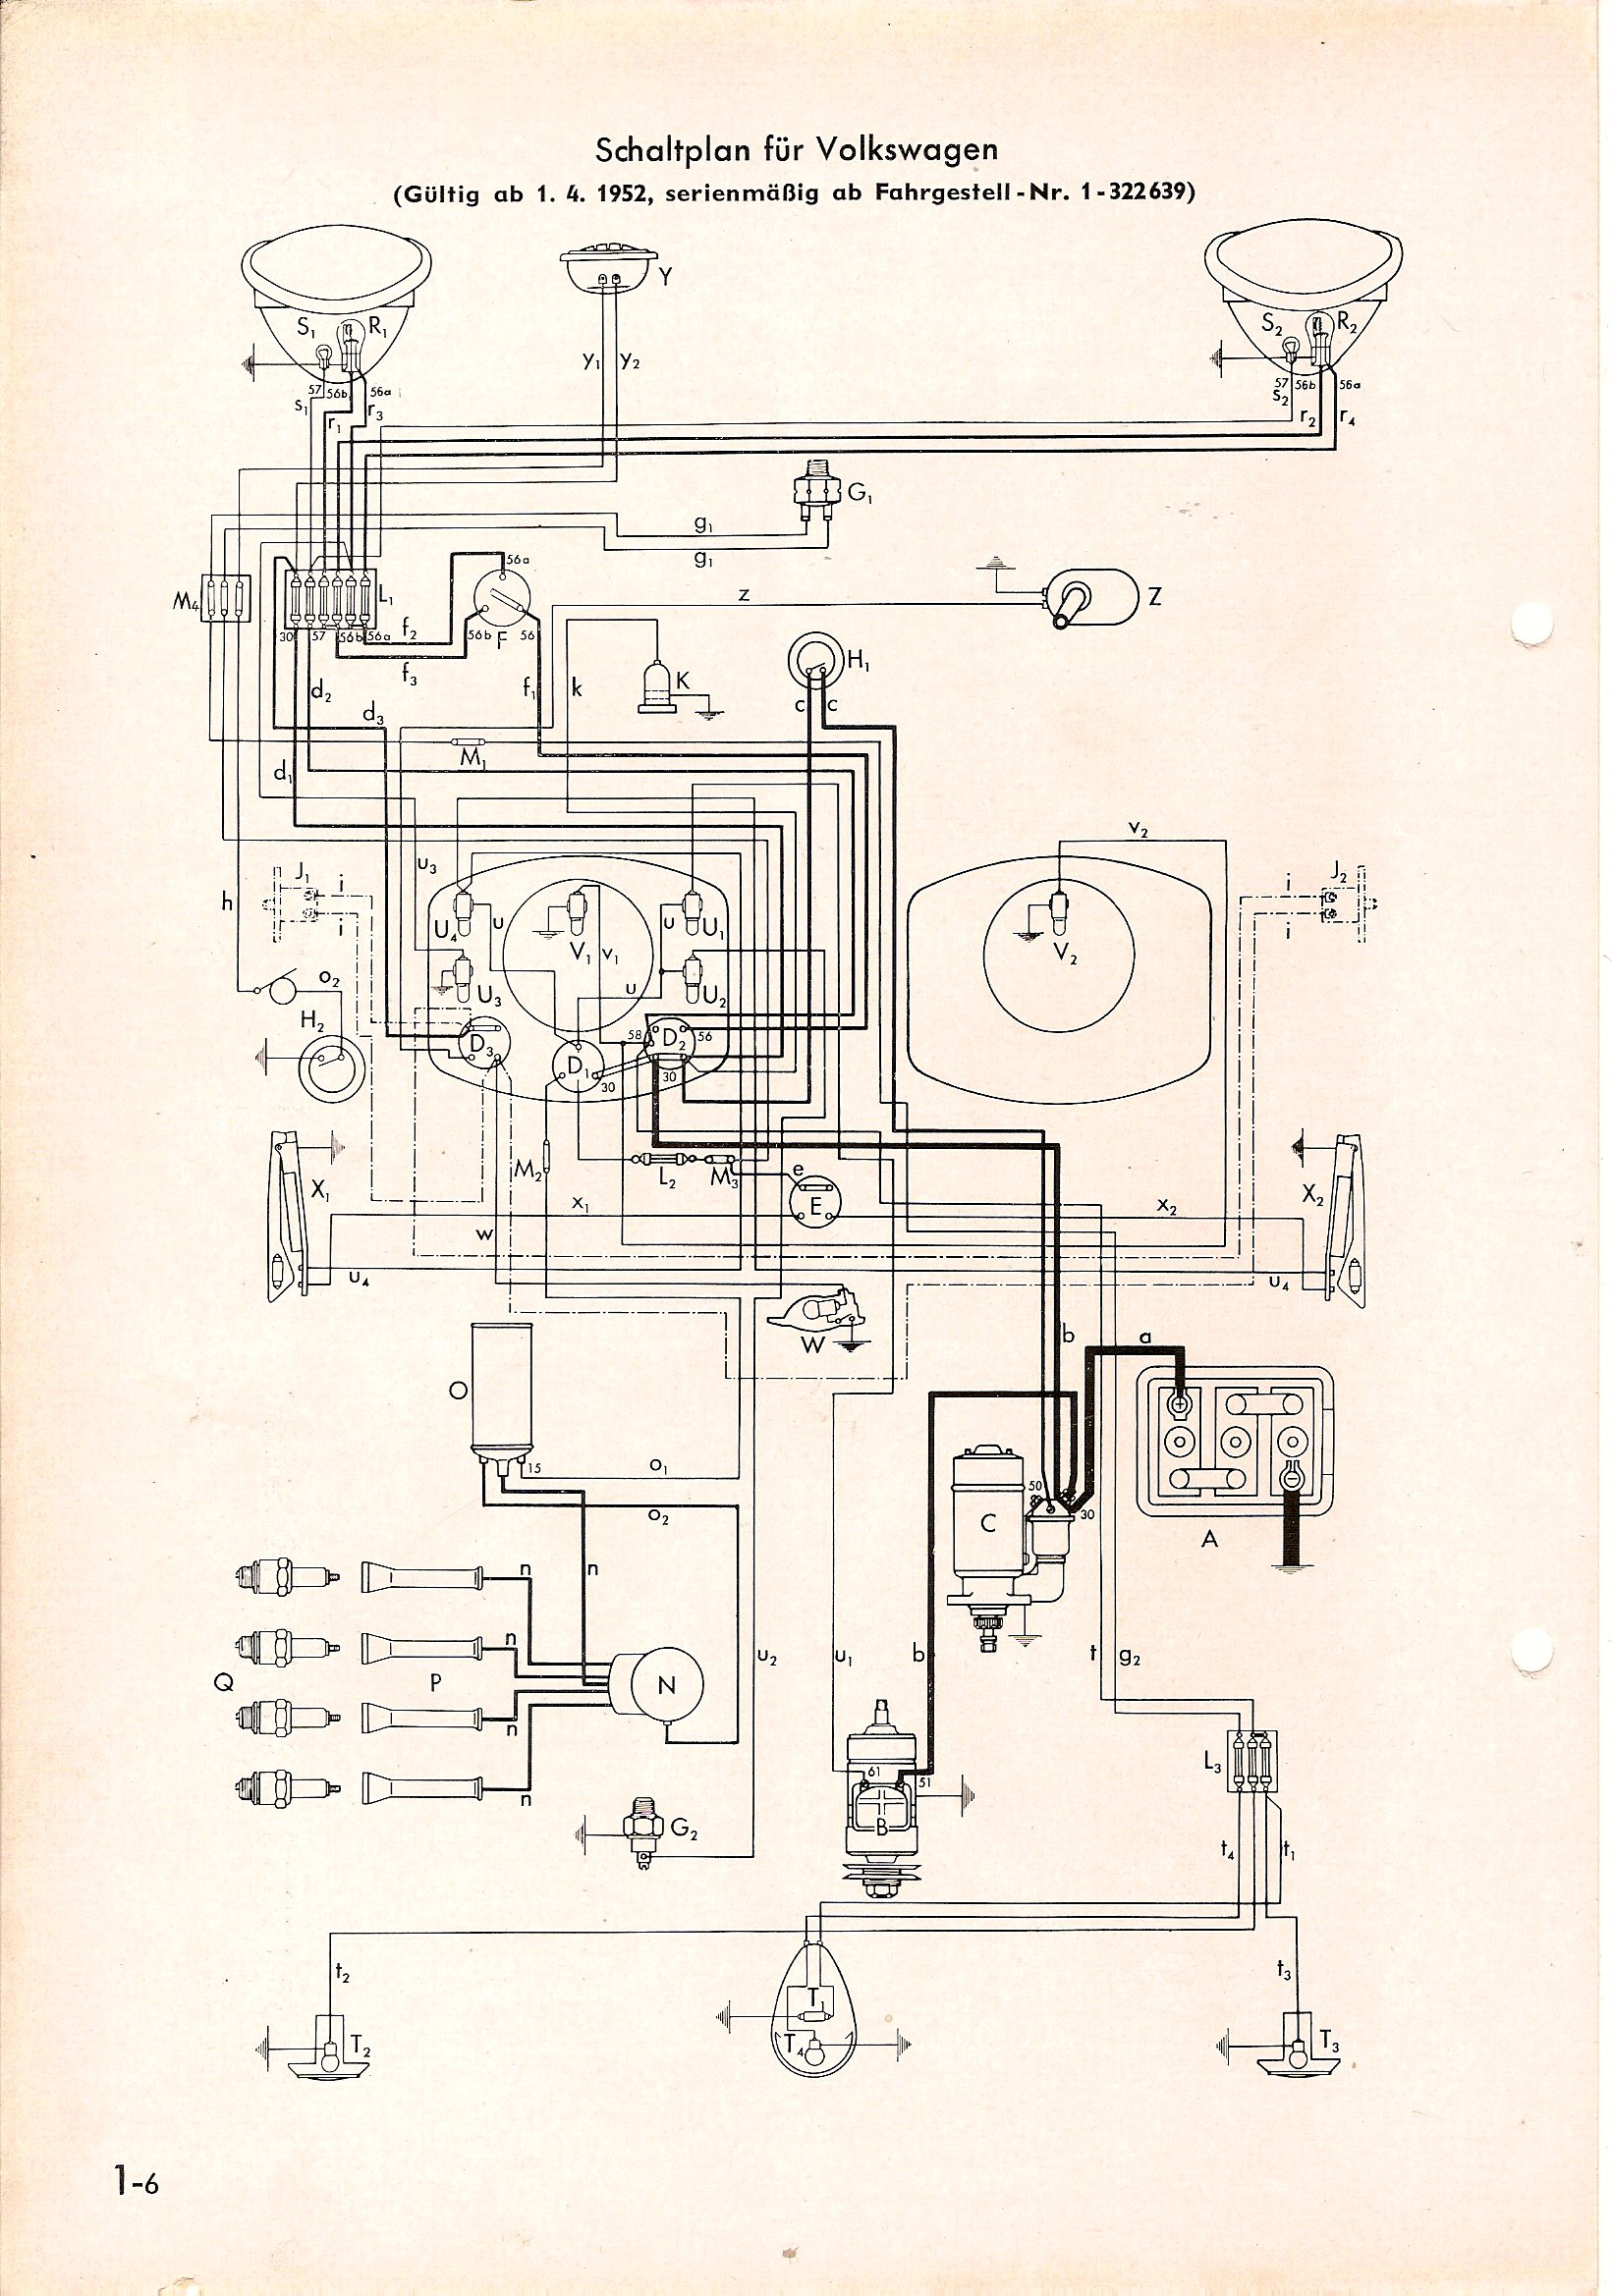 Fordflexowd likewise Fordf Superdutyowd besides Node besides Vintage Air Wiring Diagram Diagrams Gen Iv Conditioning also Ford Thunderbird Temperature Gauge Wiring. on 1955 ford wiring diagram